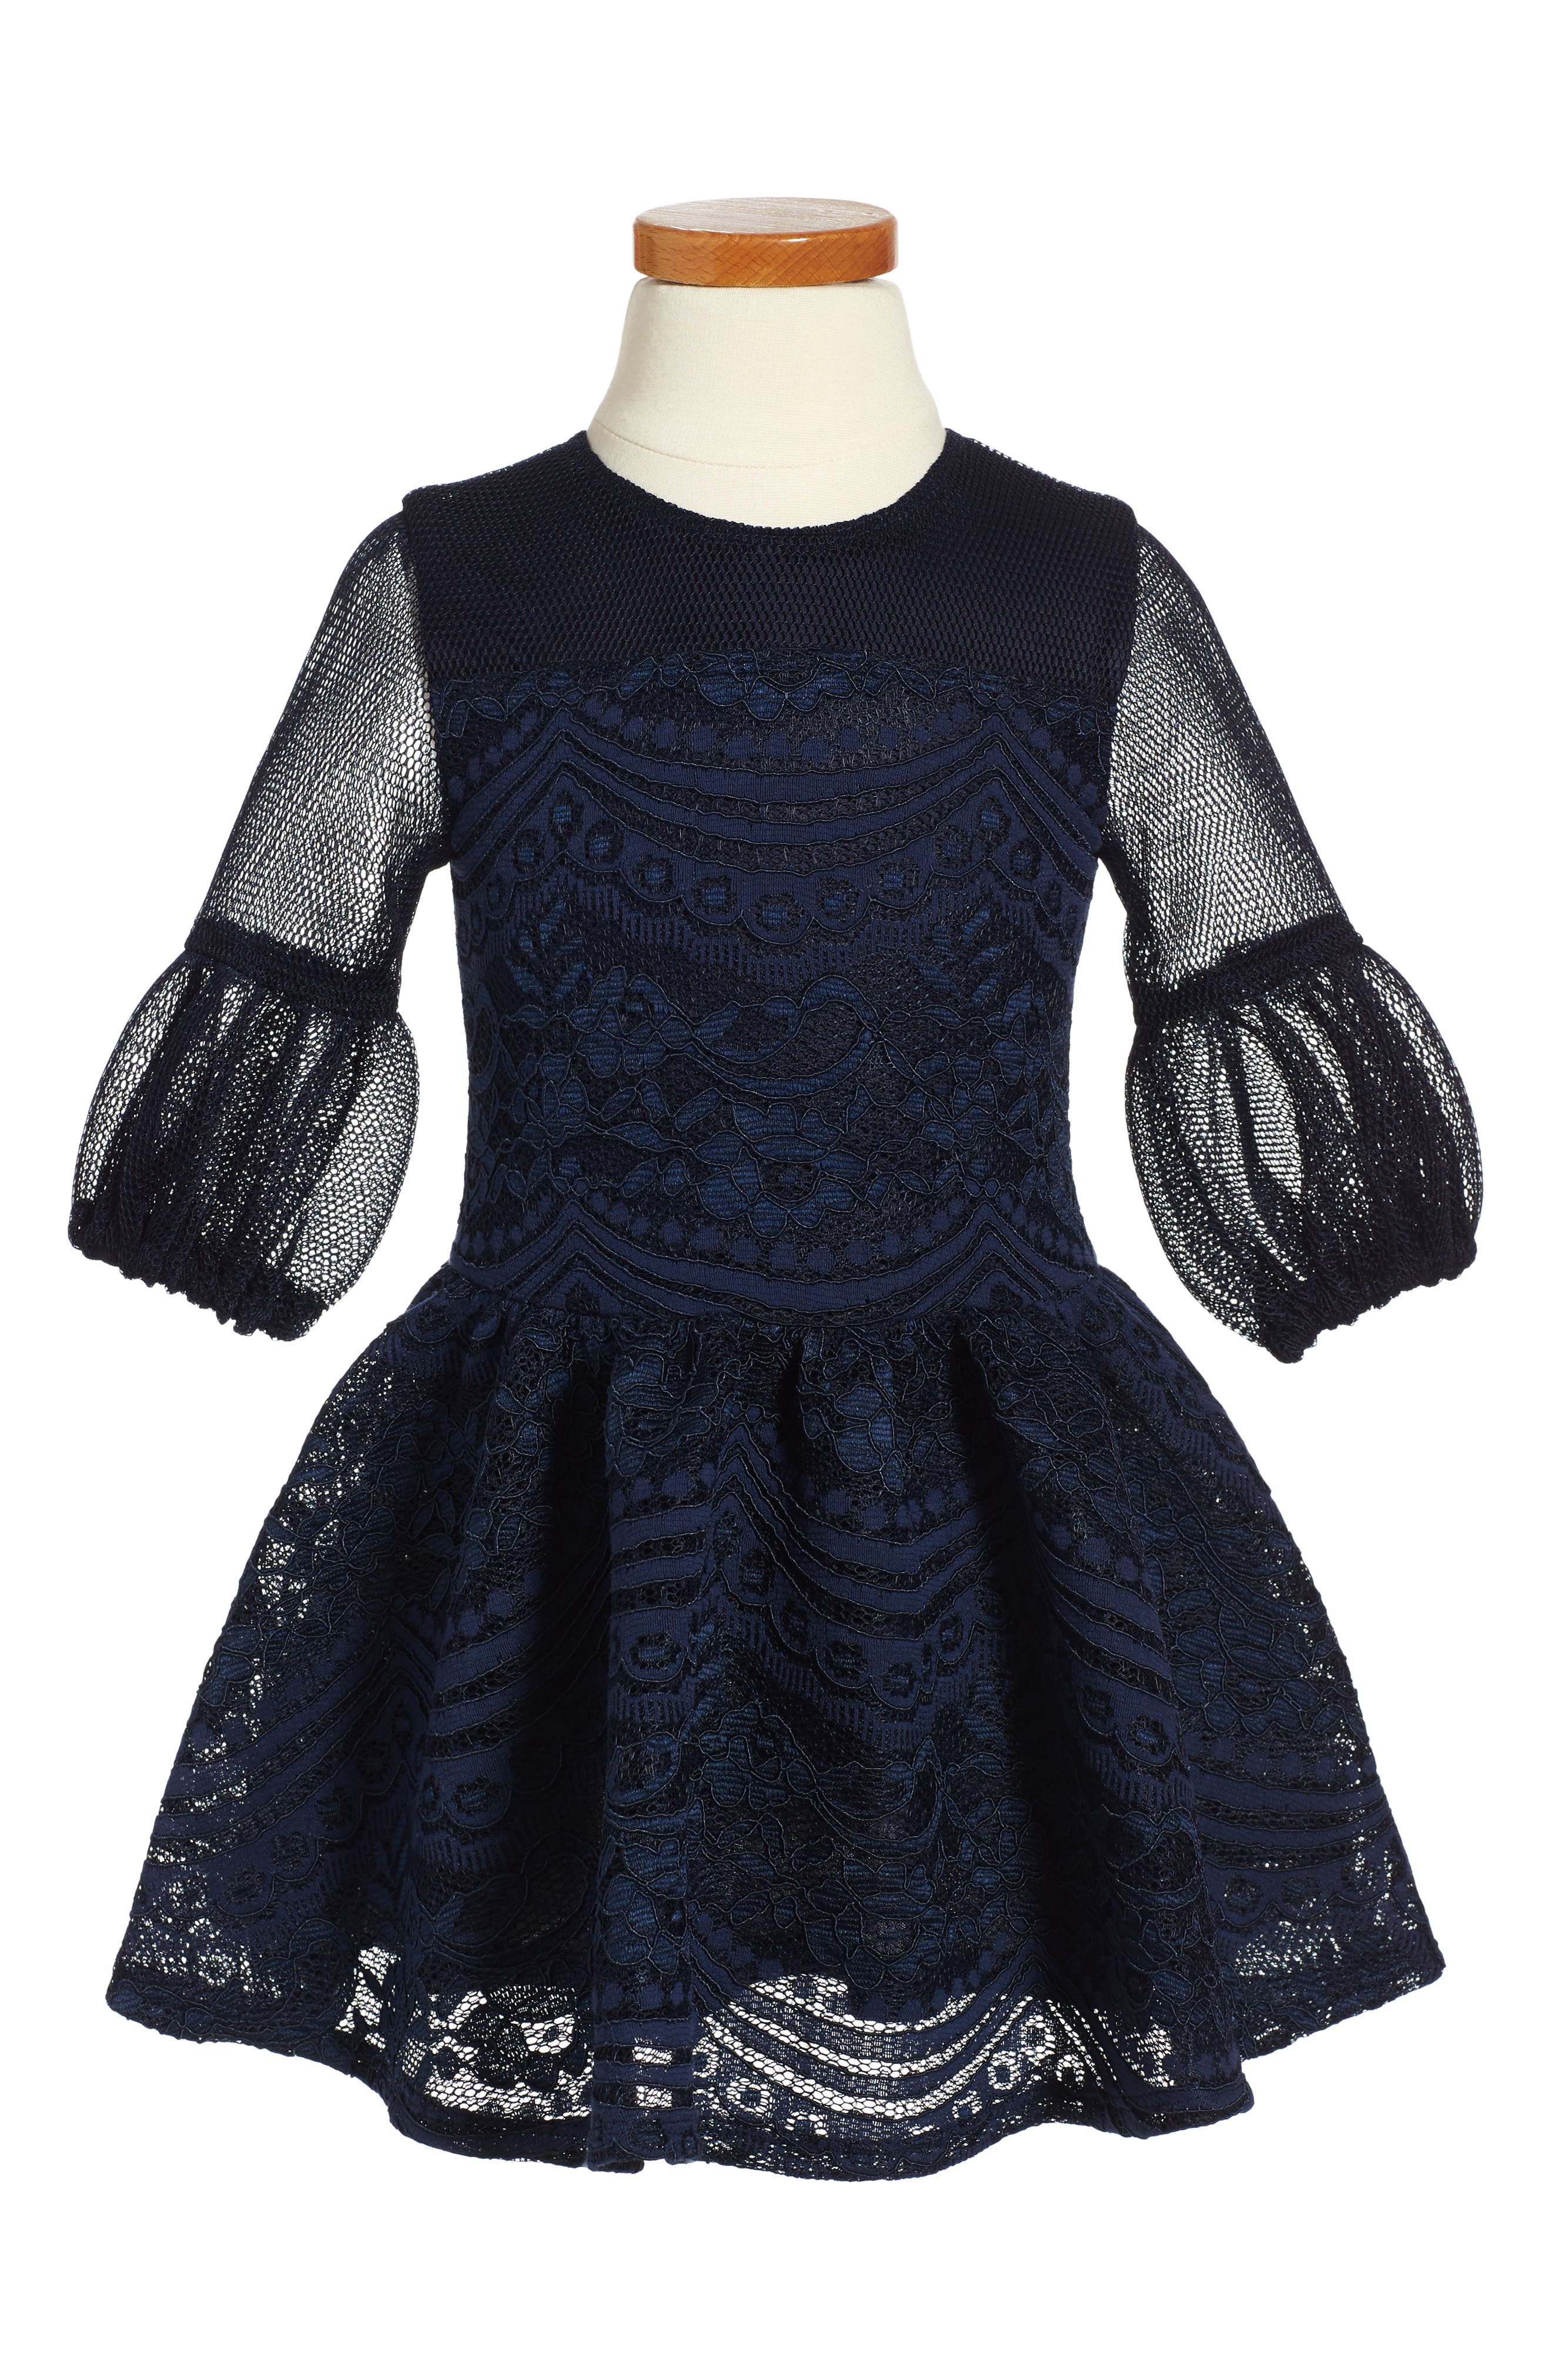 David Charles Techno Lace Dress (Toddler Girls & Little Girls)